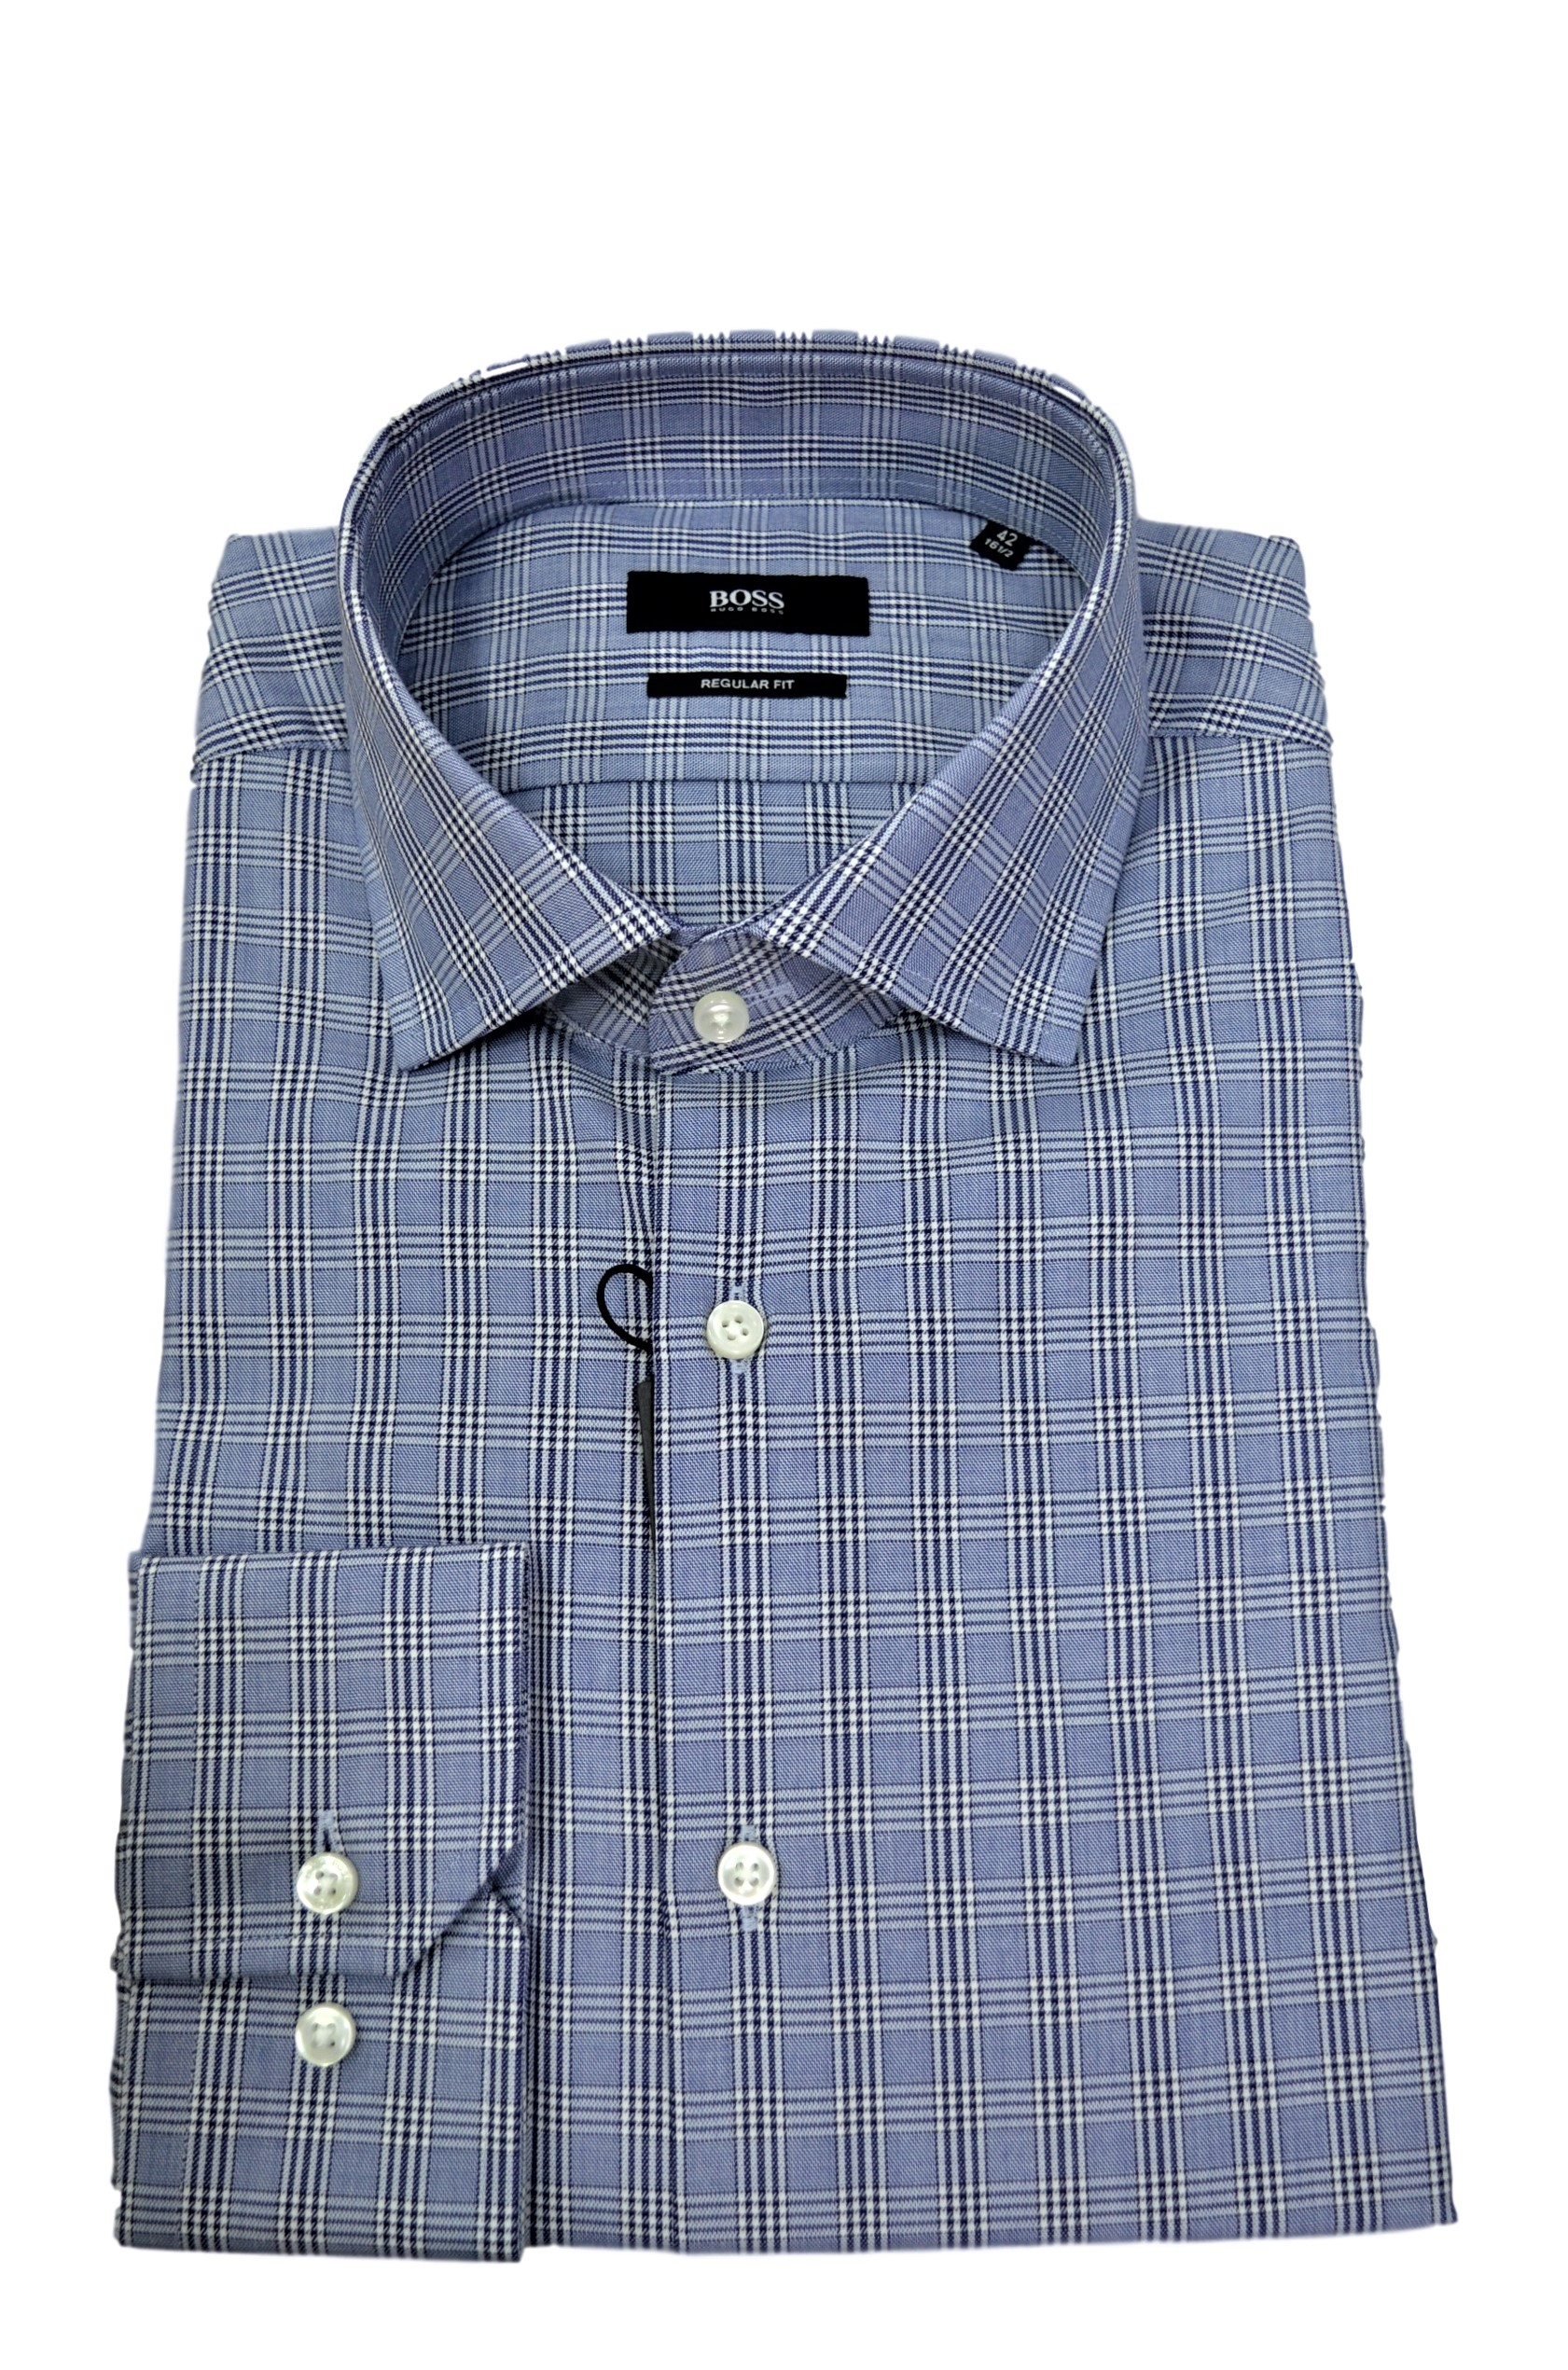 HUGO BOSS CAMICIA QUADRETTO FANTASIA 50415589 MOD. GORDON REGULAR FIT